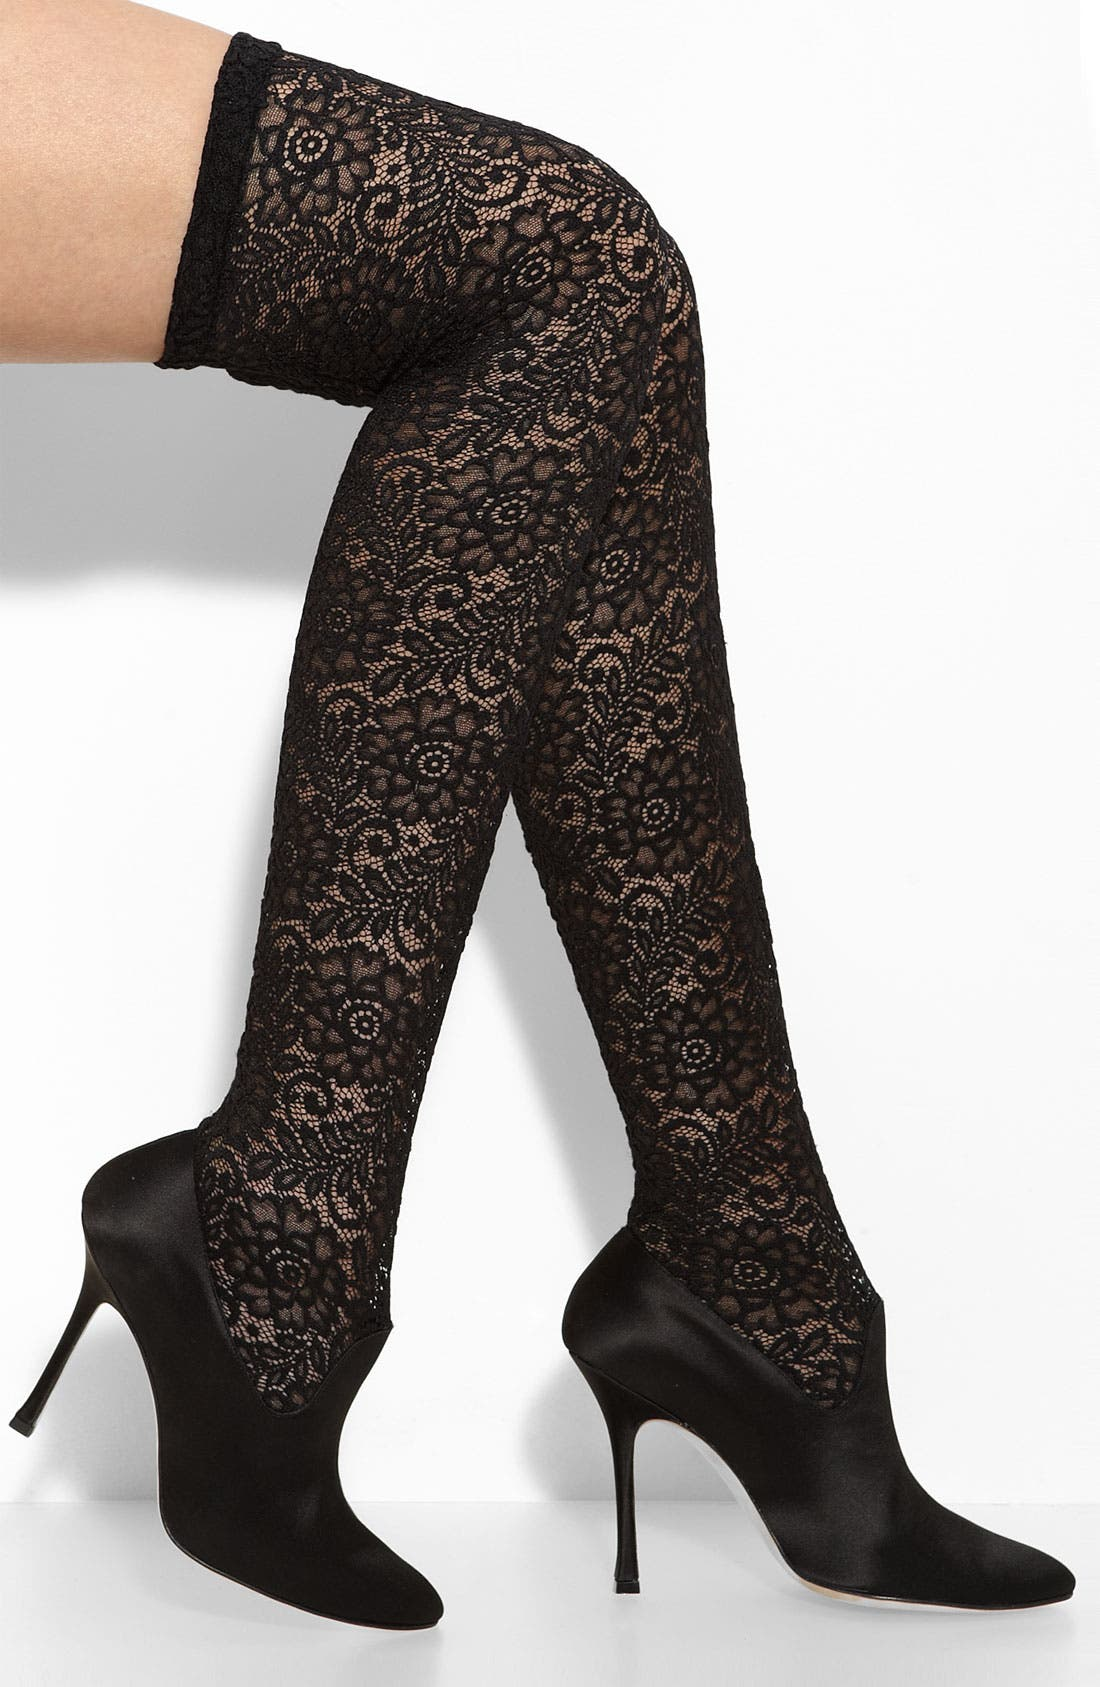 Alternate Image 1 Selected - Manolo Blahnik 'Pascalare' Over the Knee Stretch Lace Boot